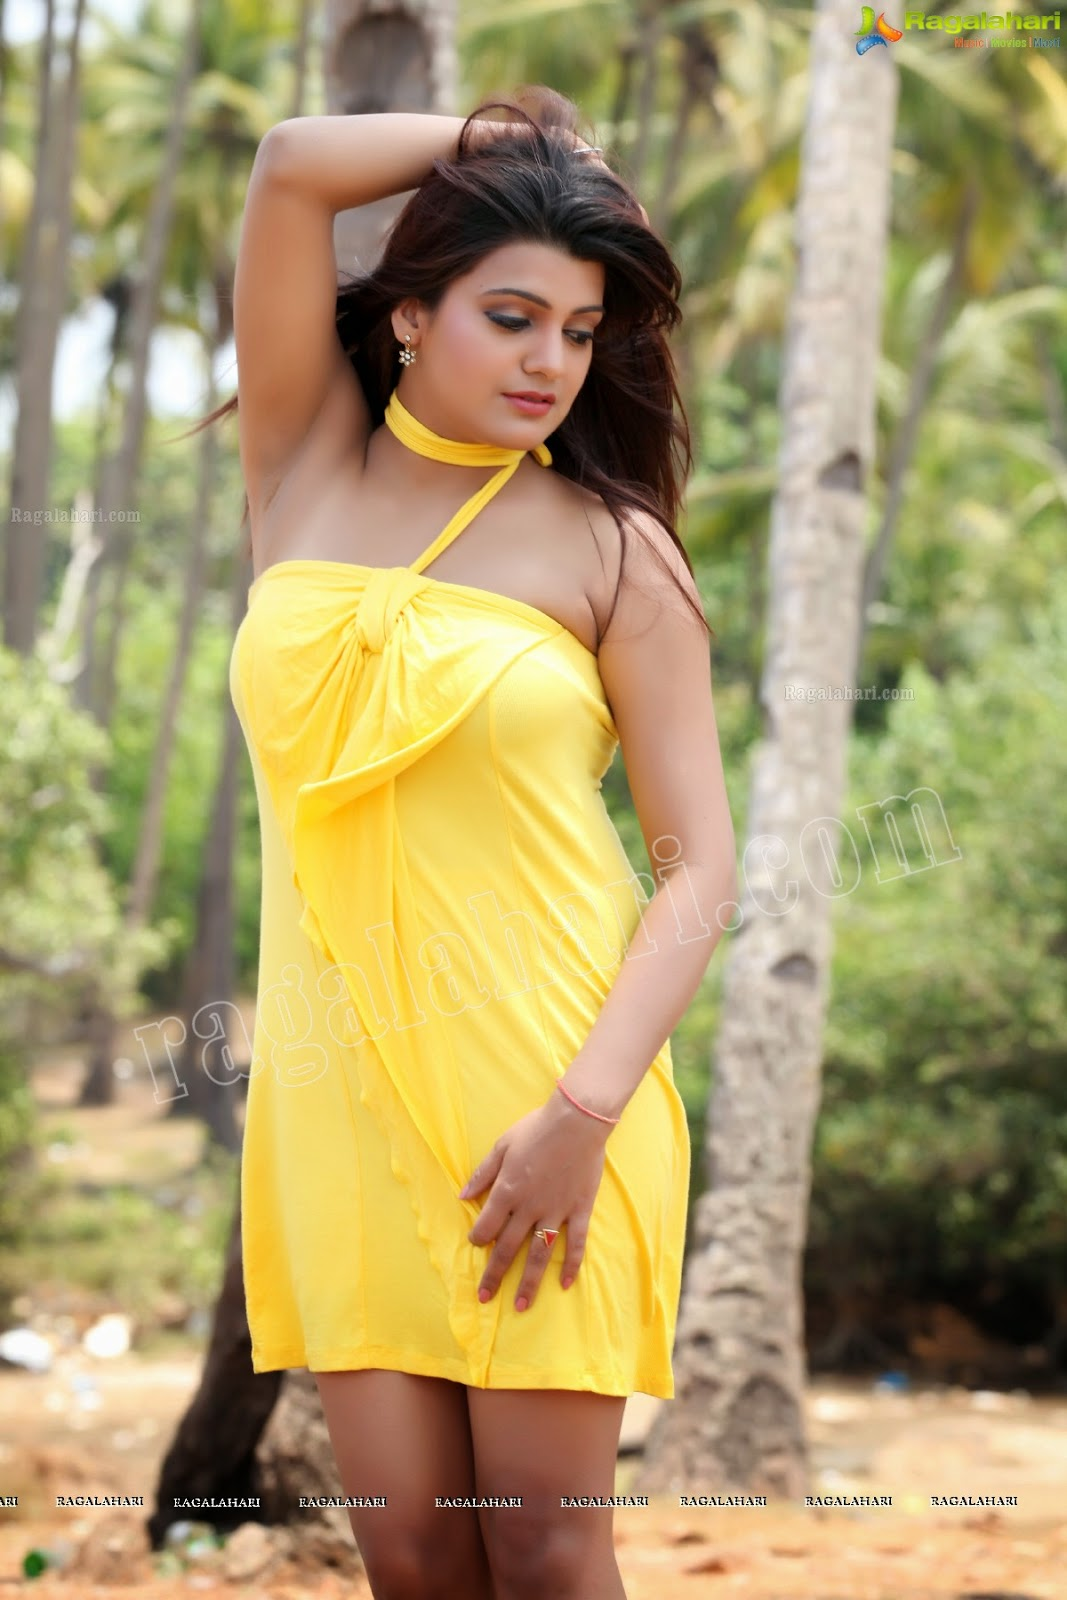 Tashu Kaushik Hot Armpit Show in a mini Sleevless Dress